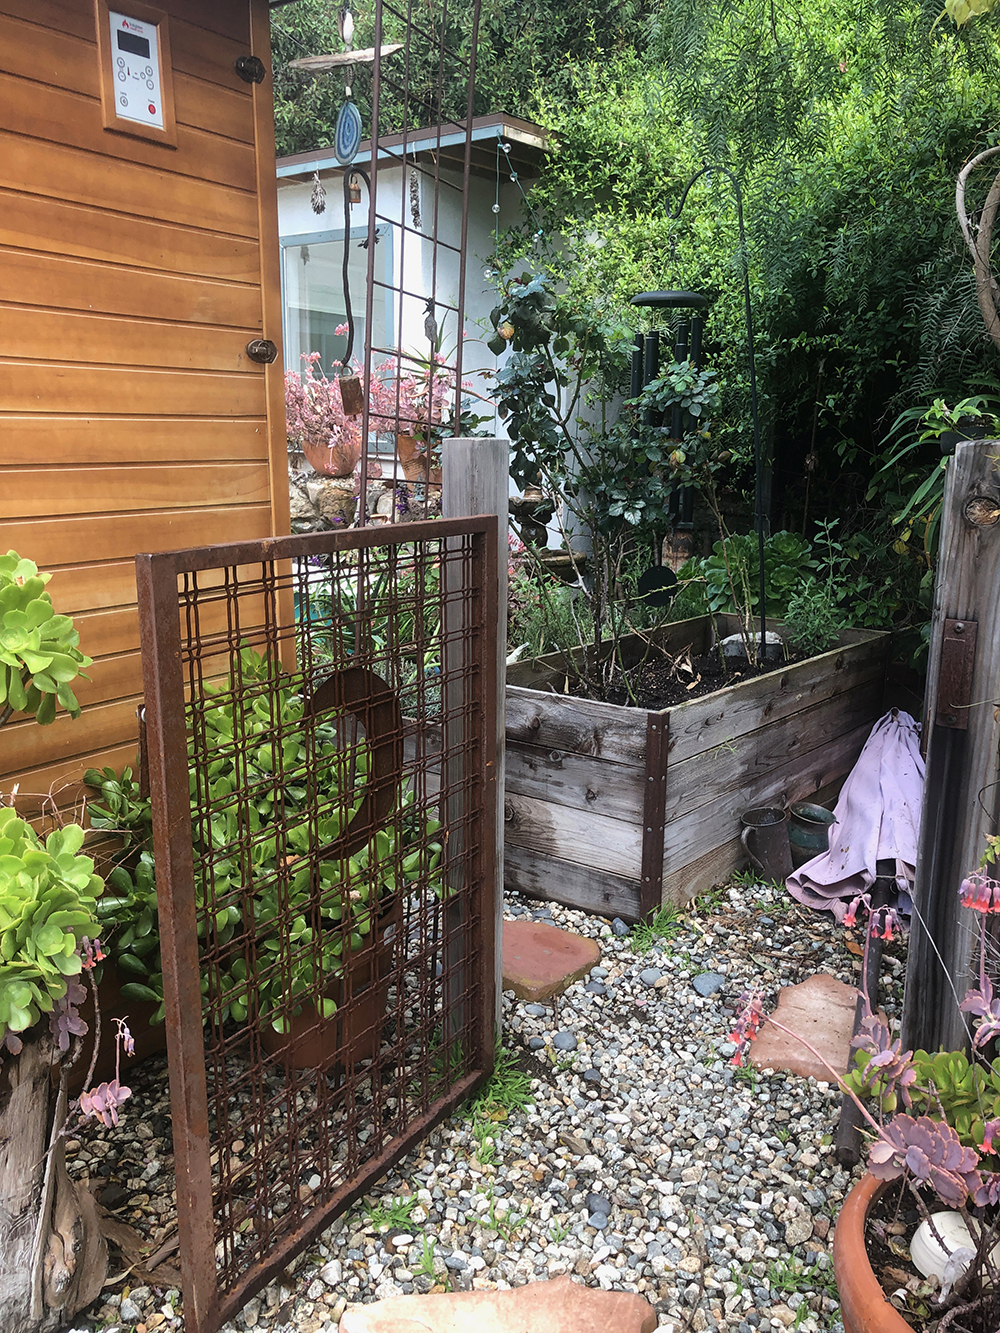 Jansen grows a variety of plants and herbs in the garden.